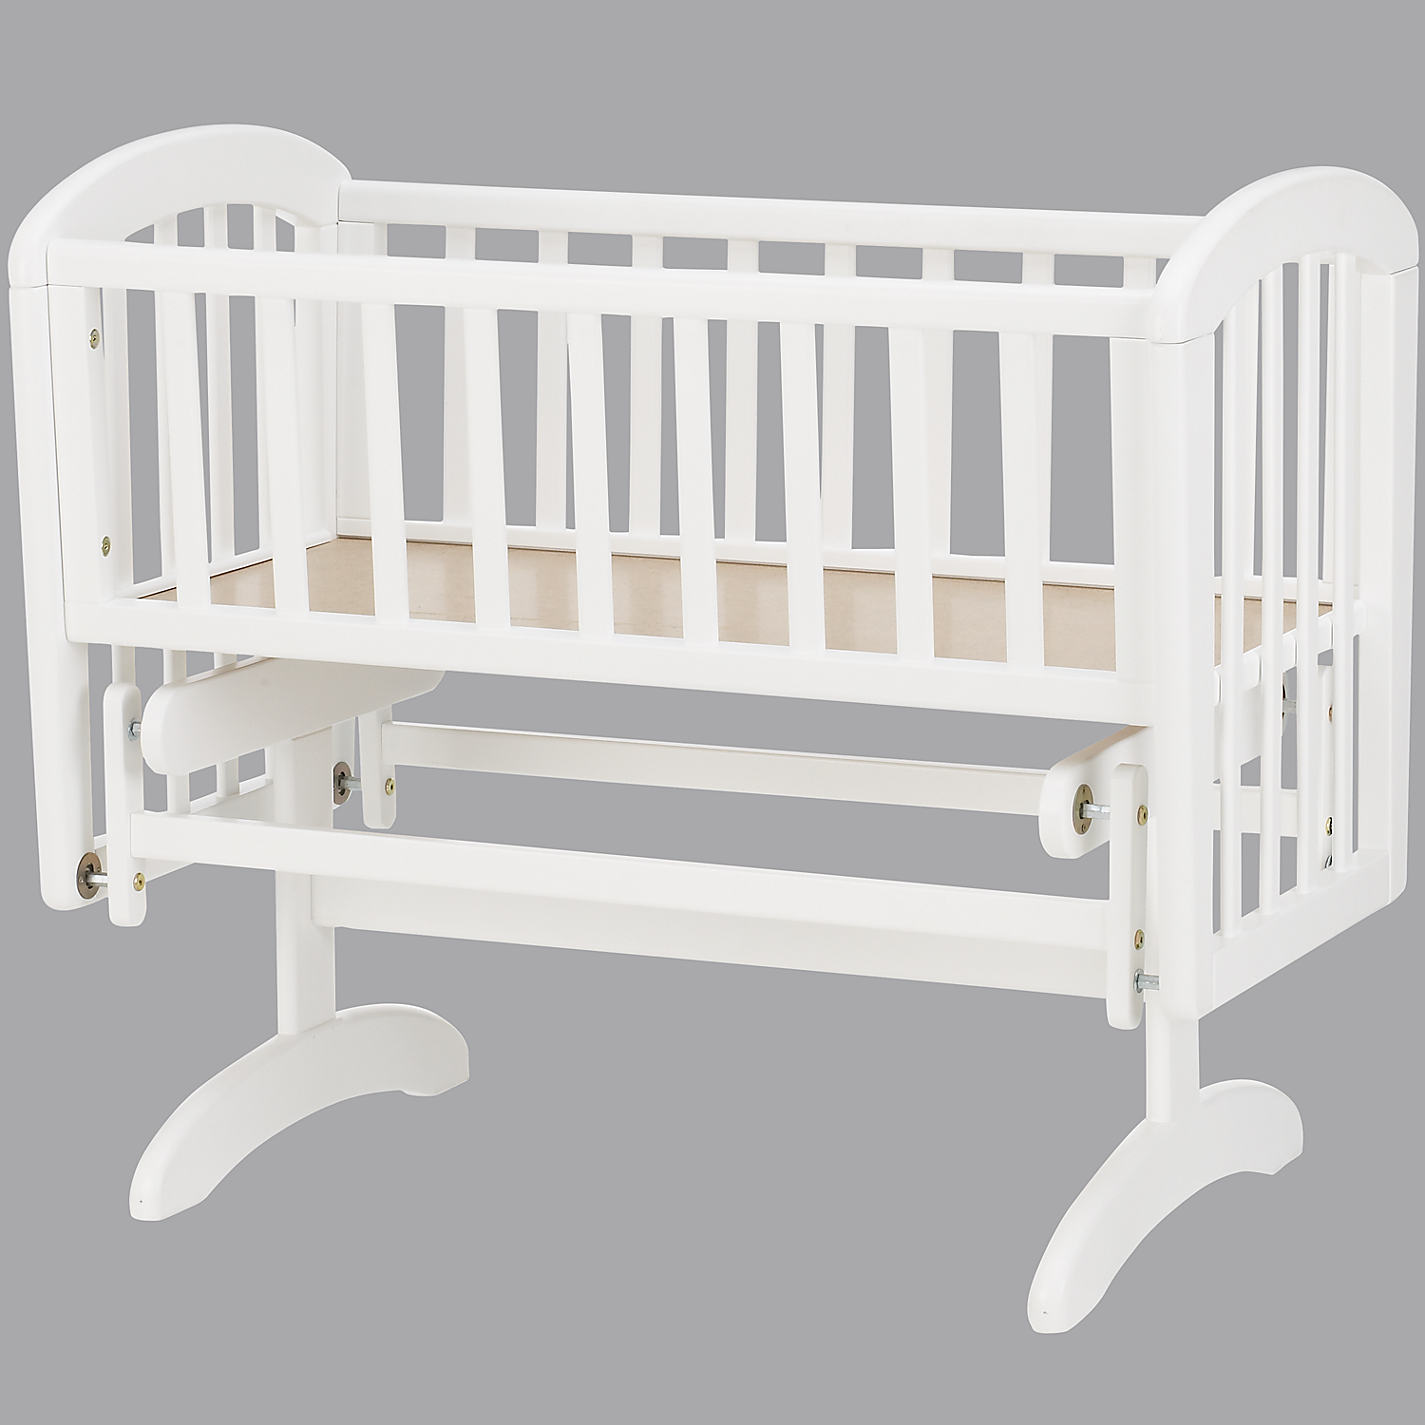 Baby bed zomer - Baby Cribs John Lewis Baby Bed John Lewis Kiddicare_dream_crib_natural_a_ss_1 Sleeping Options Baby Crib